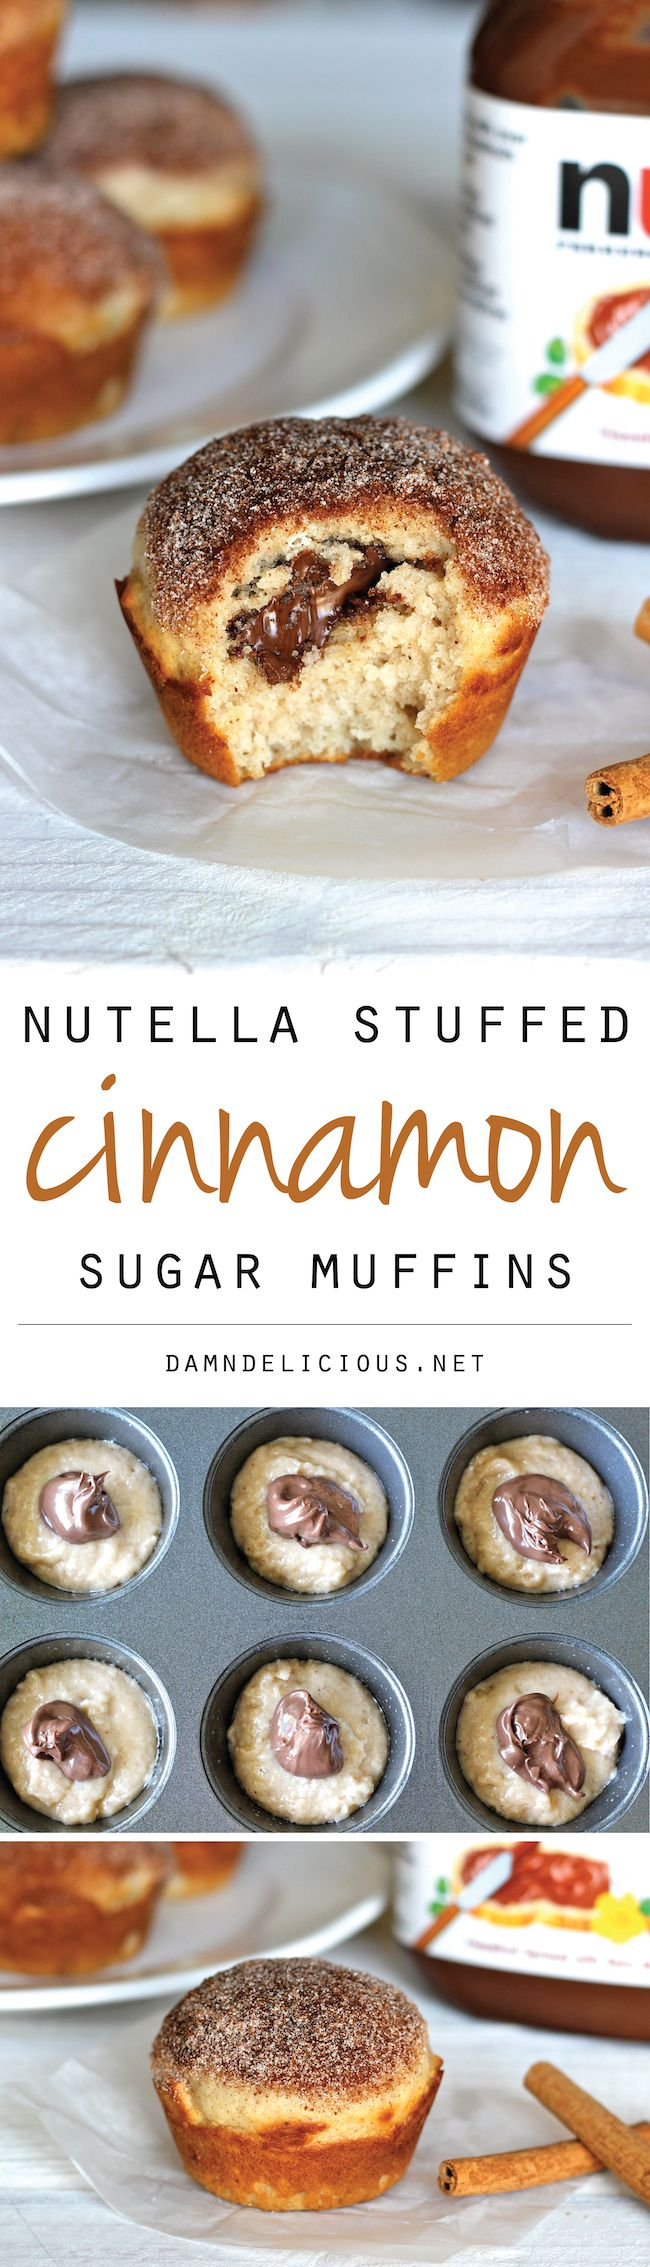 What?!?!-- Nutella Stuffed Cinnamon Sugar Muffins - Cinnamon sugar crusted muffin tops with a hidden Nutella filling that everyone will love!